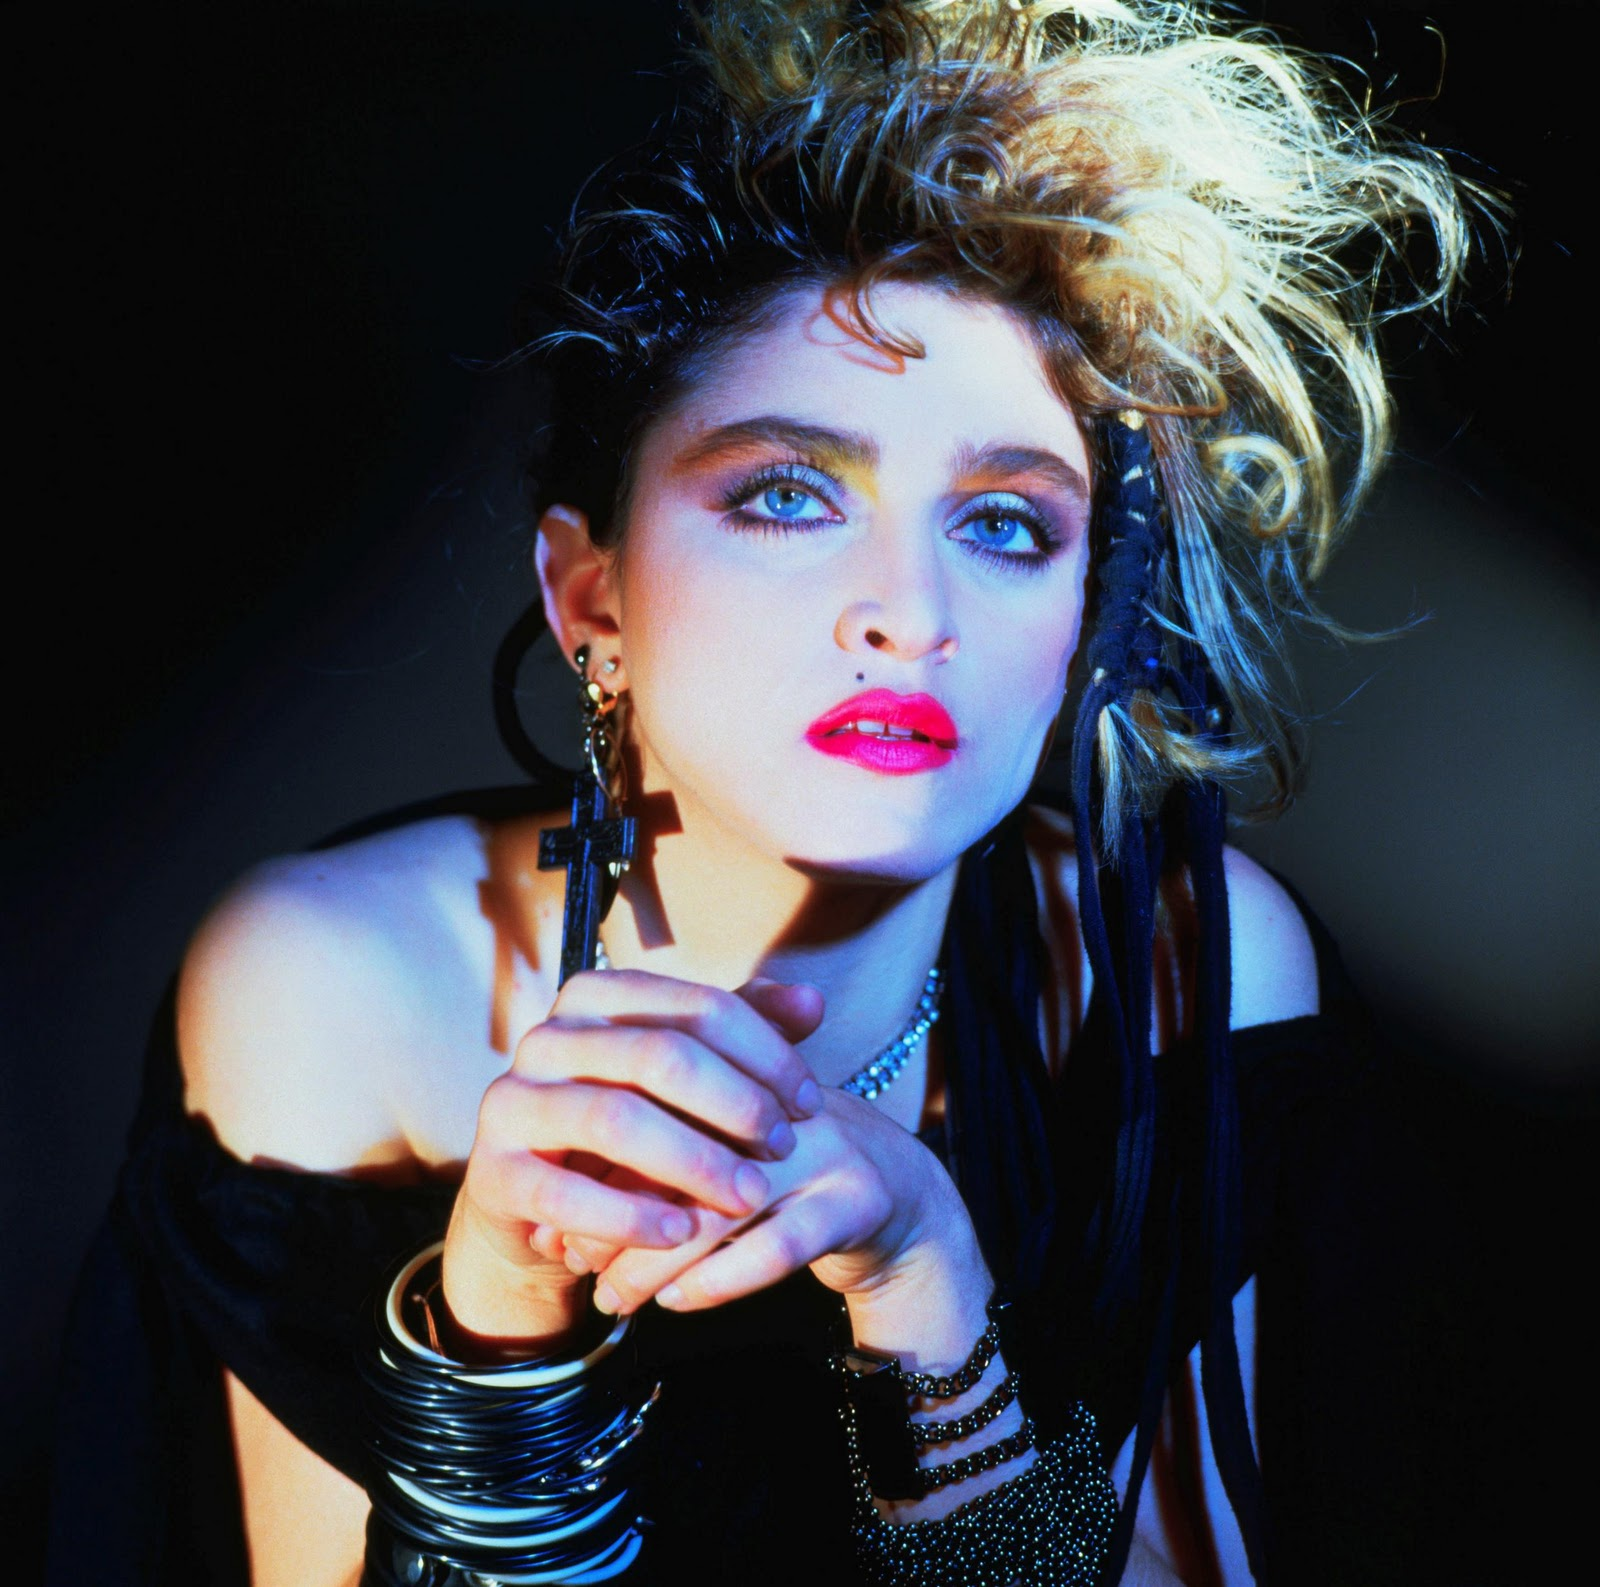 80s celebs and fashion icons So, in an attempt to correct this latest grievous error, we have compiled a list of 15 essential women punk icons let's be clear: these are hardly the only noteworthy women in punk.